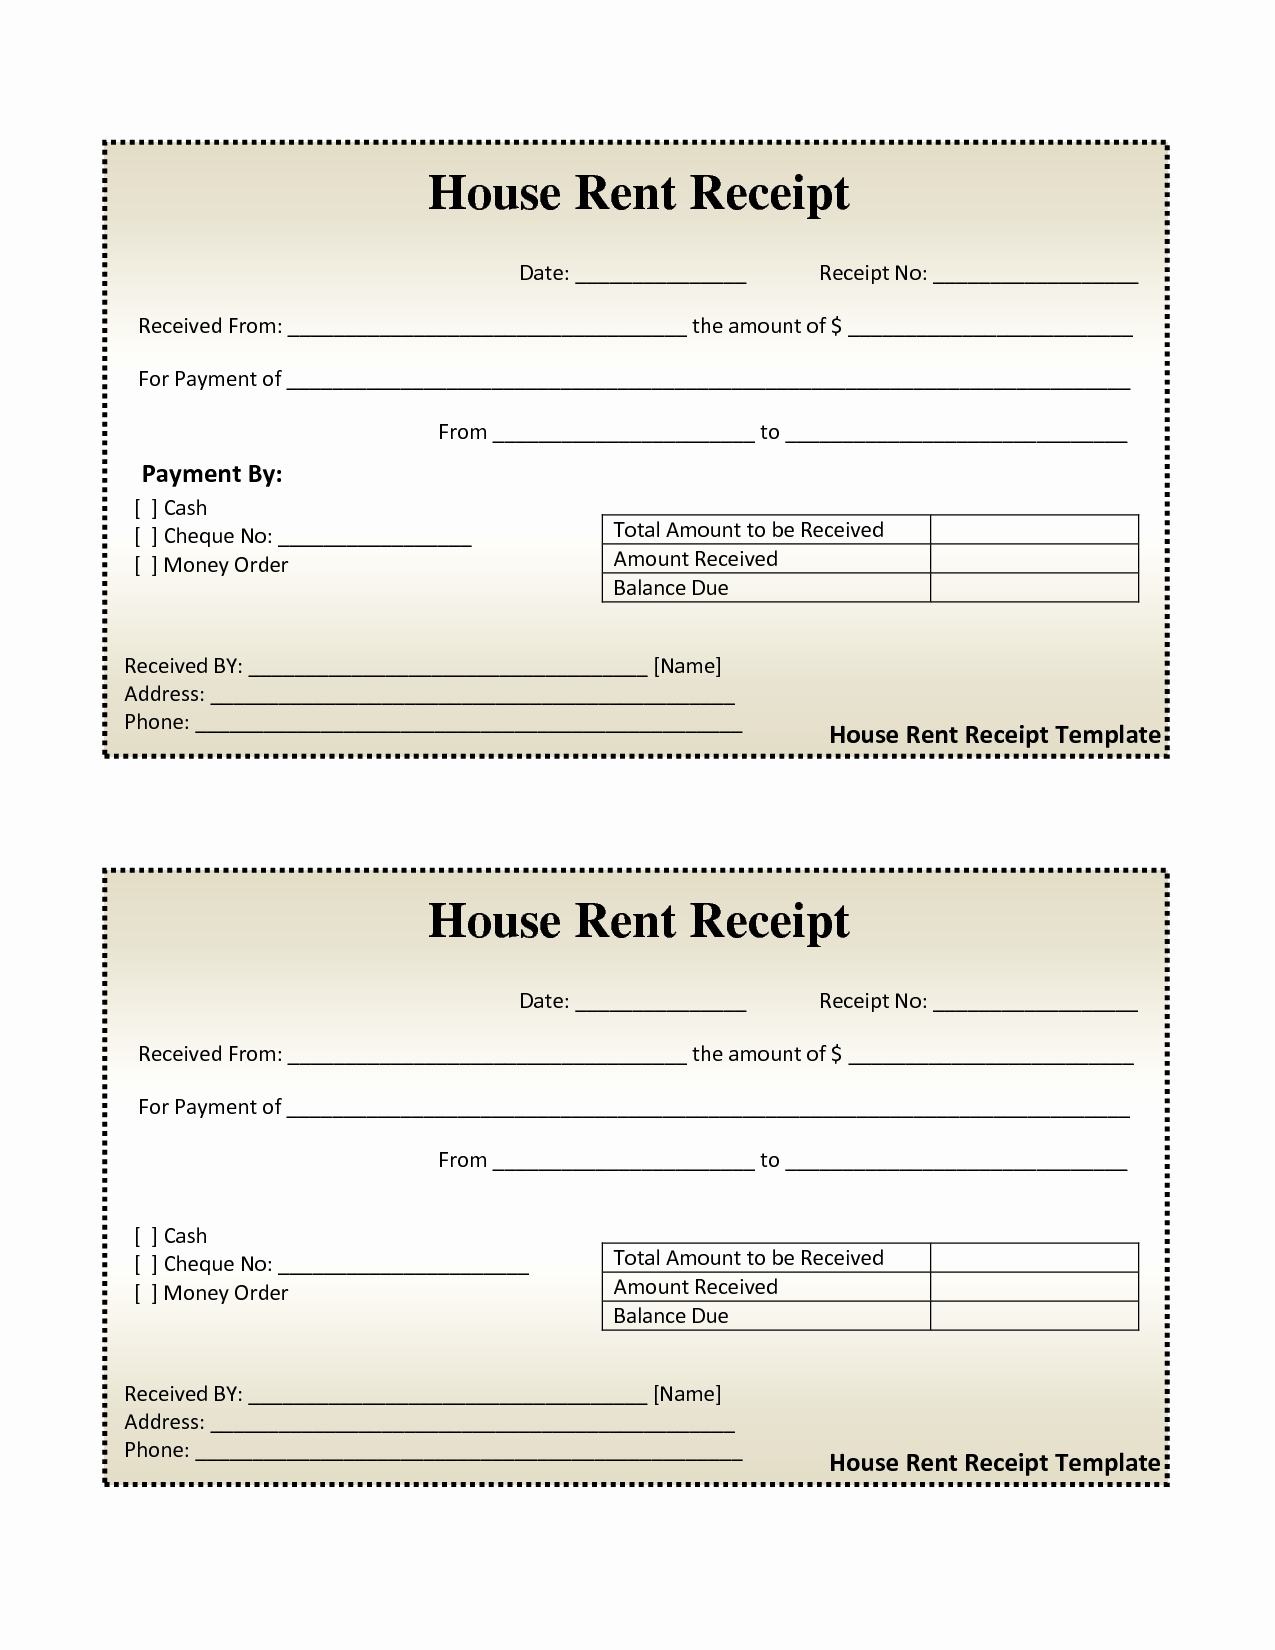 Rent Invoice Template Excel New Free House Rental Invoice